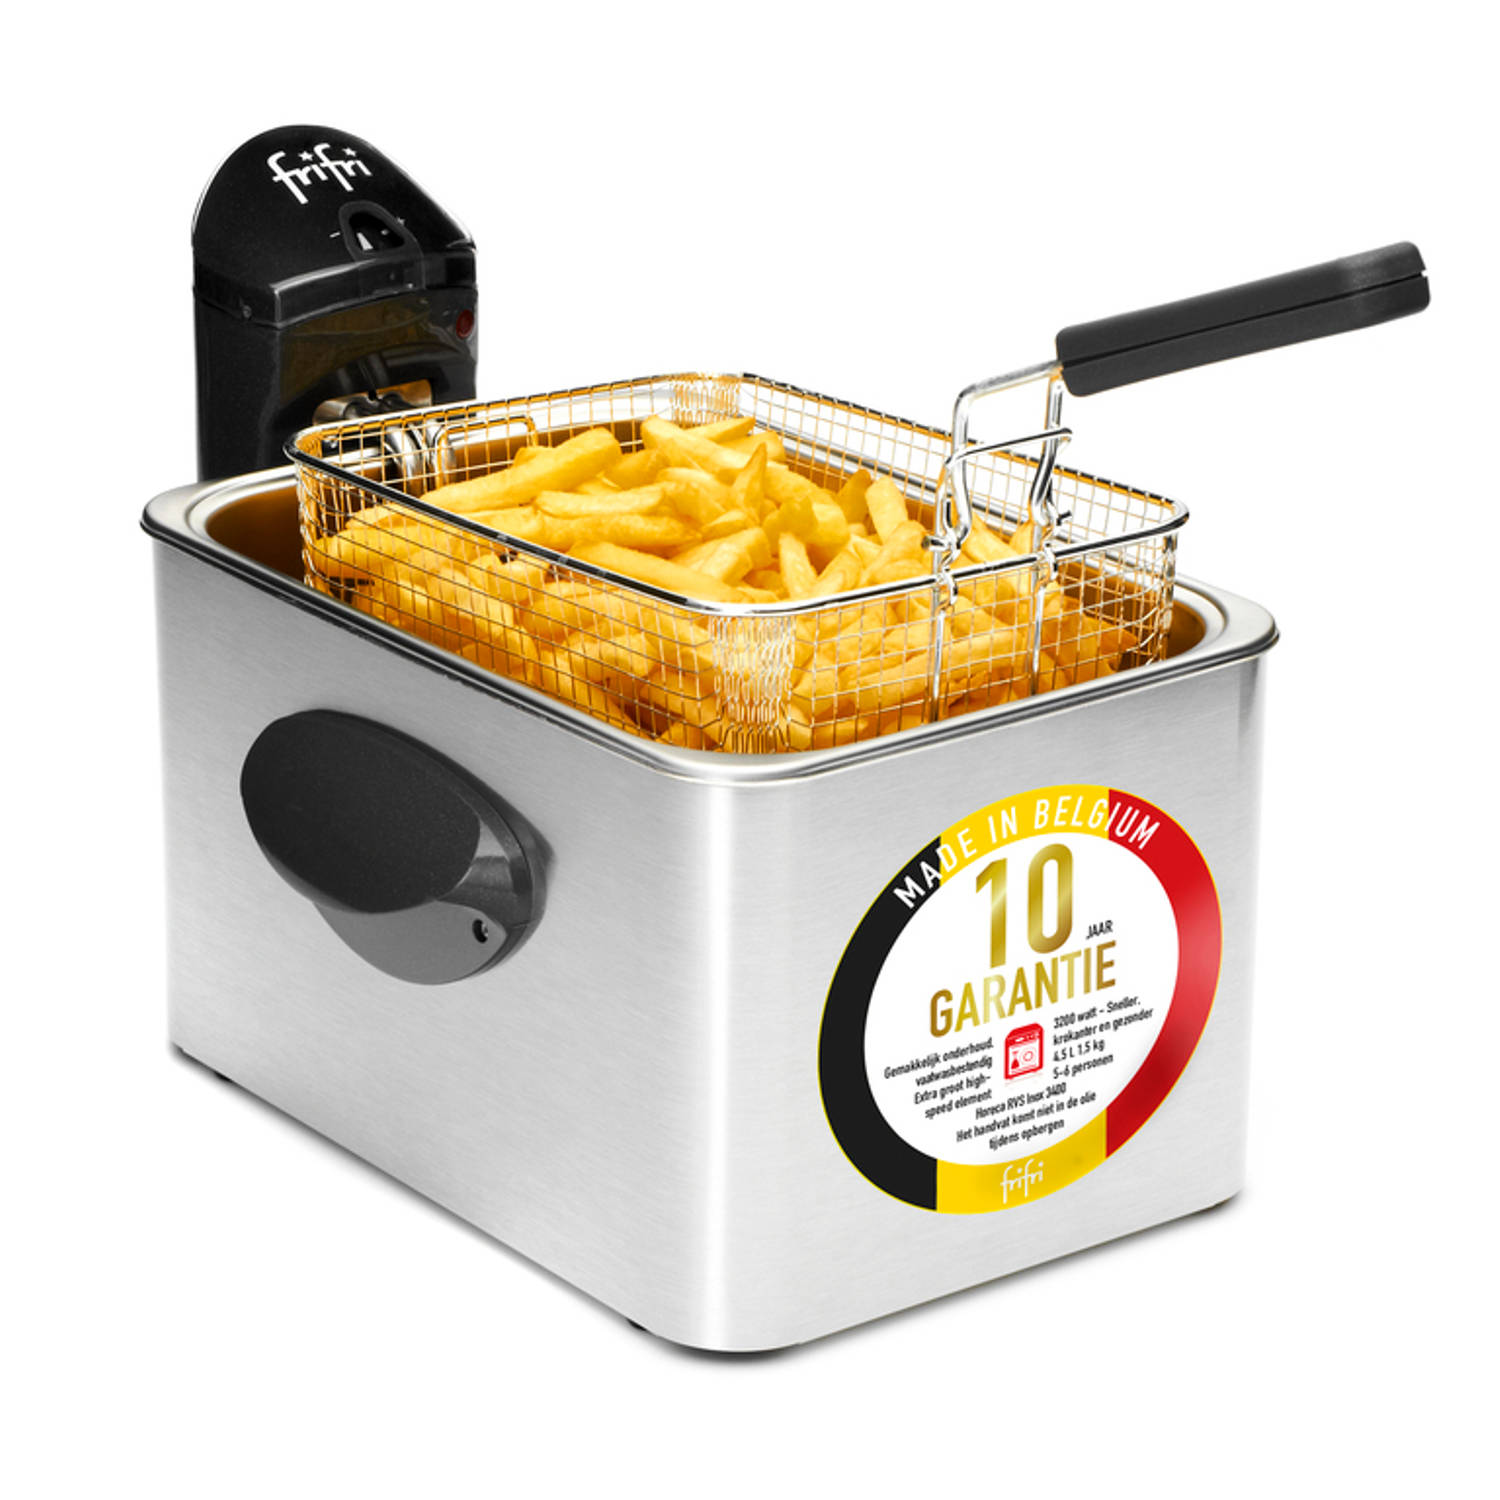 FriFri 5848 - HSCC7150 High speed classic family clean 3200Watt koude zone 4,5 L RVS friteuse